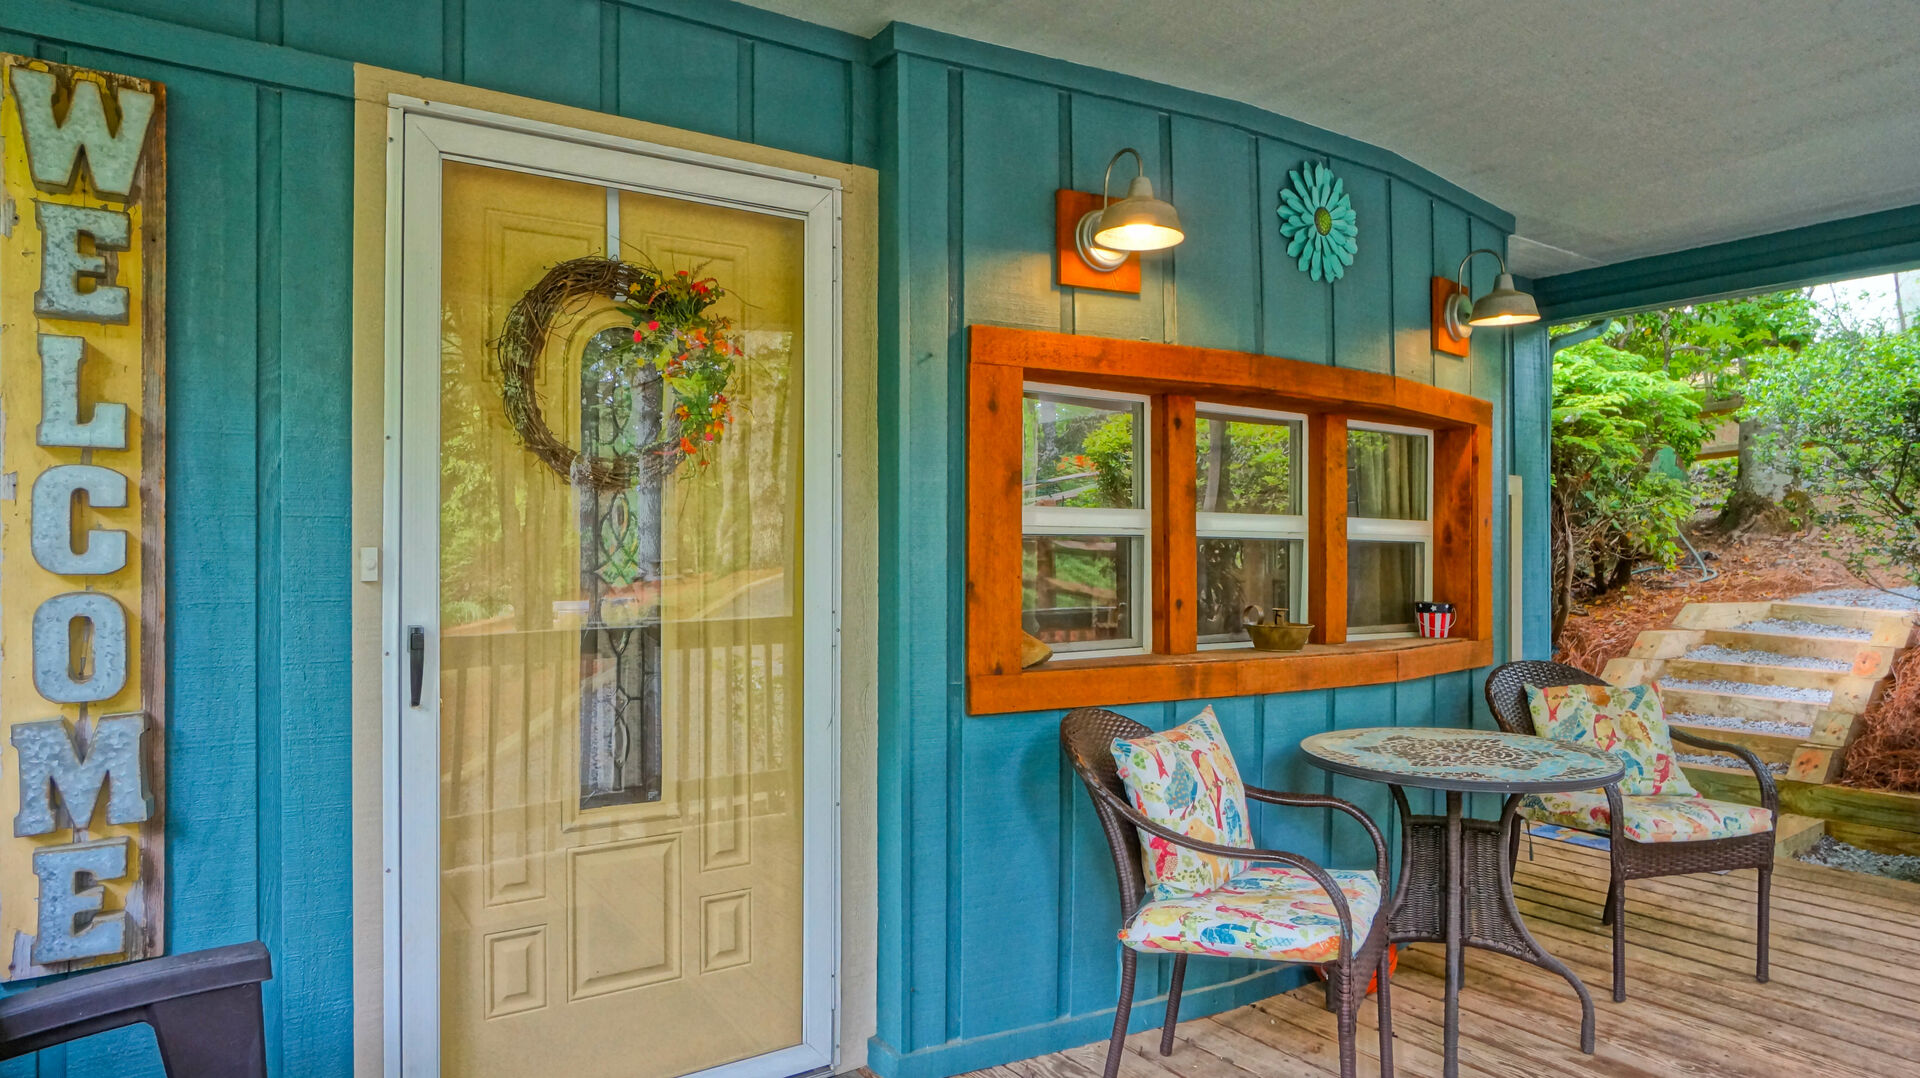 Coach S Cabin At Linville Land Harbor Linville Nc Pet Friendly Vacation Rental 2 Bedrooms 2 Bathrooms 136268 Find Rentals